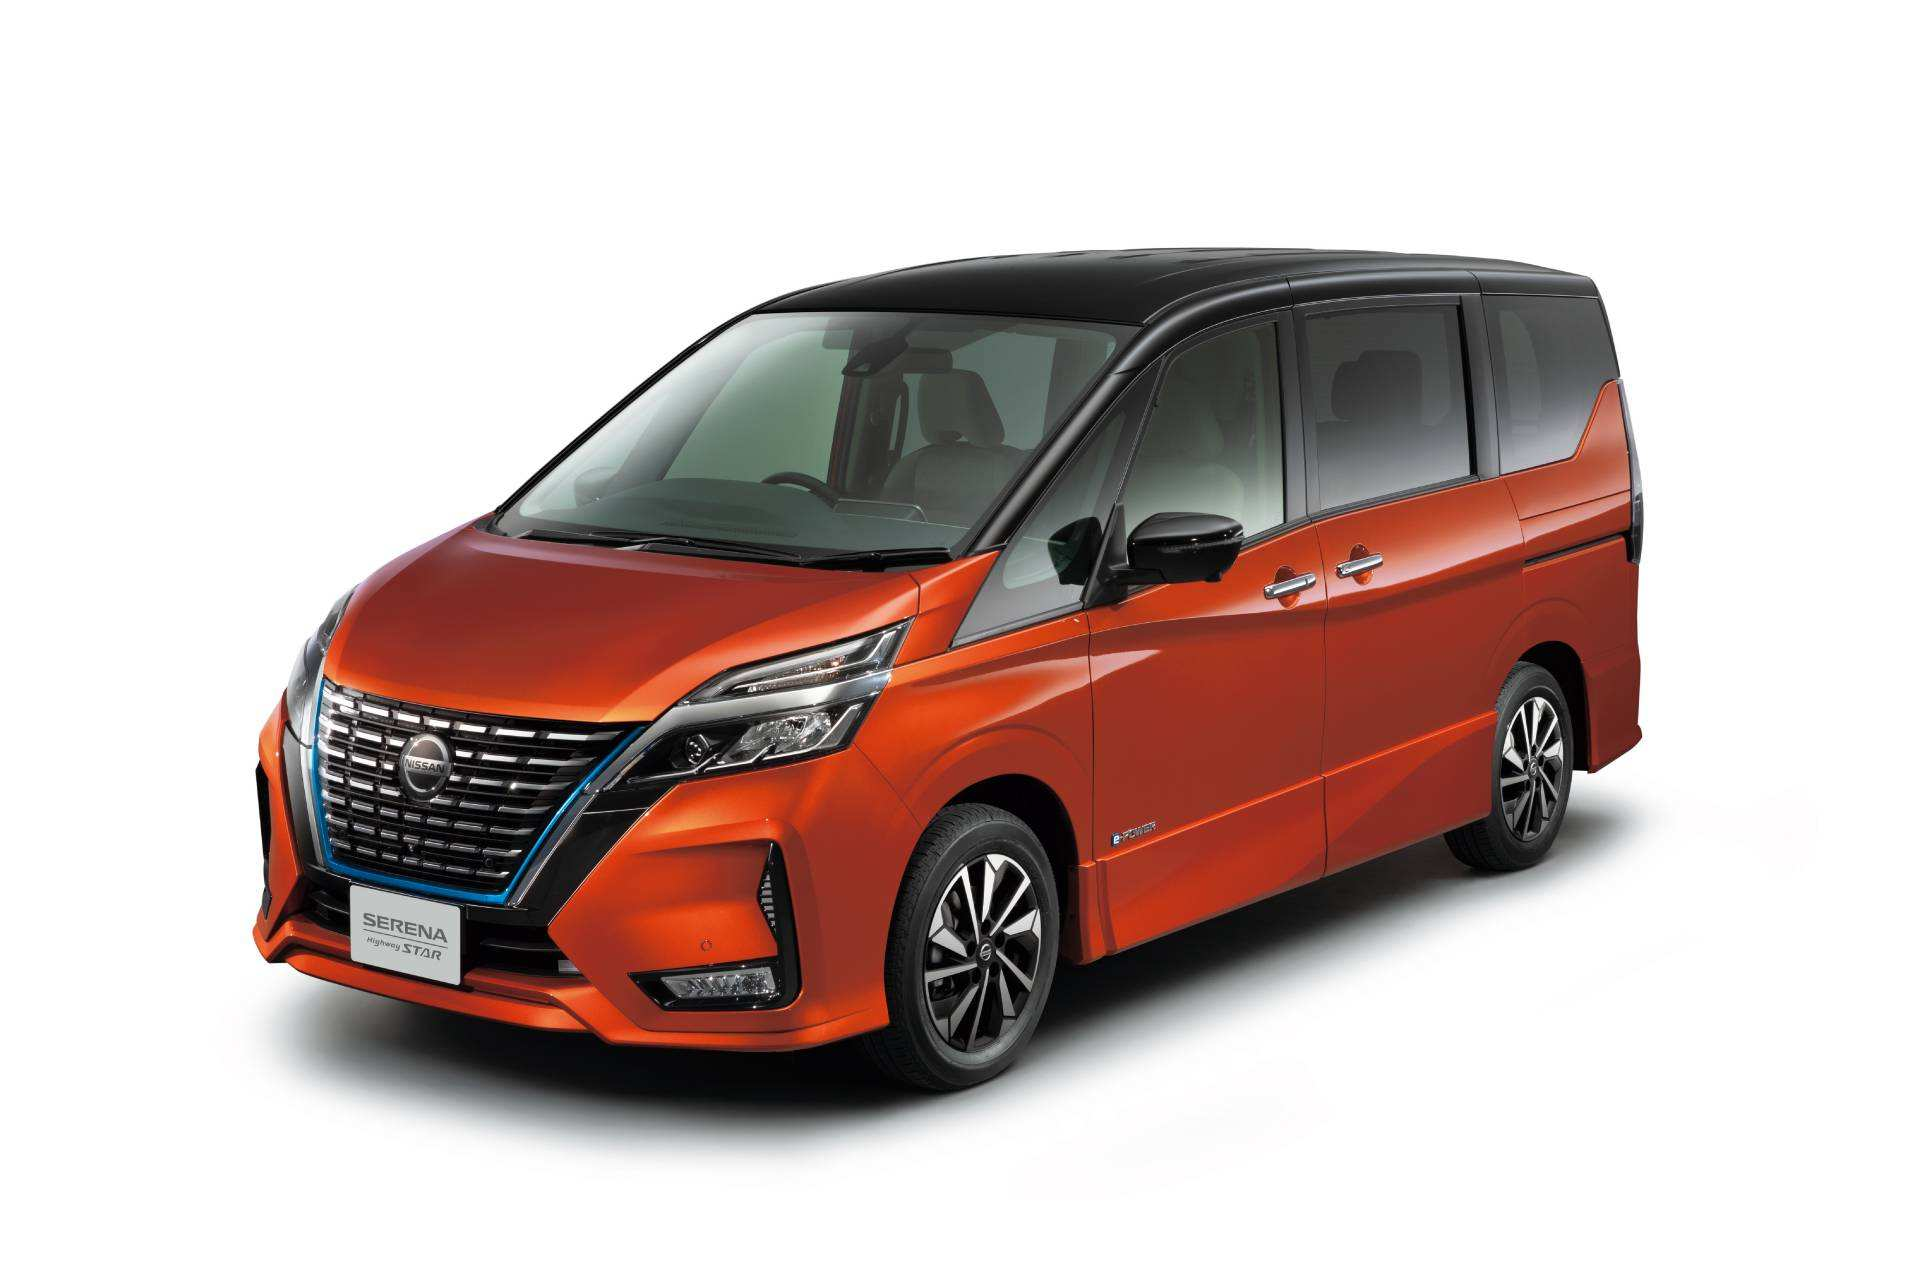 60 All New Nissan Serena 2020 Review with Nissan Serena 2020